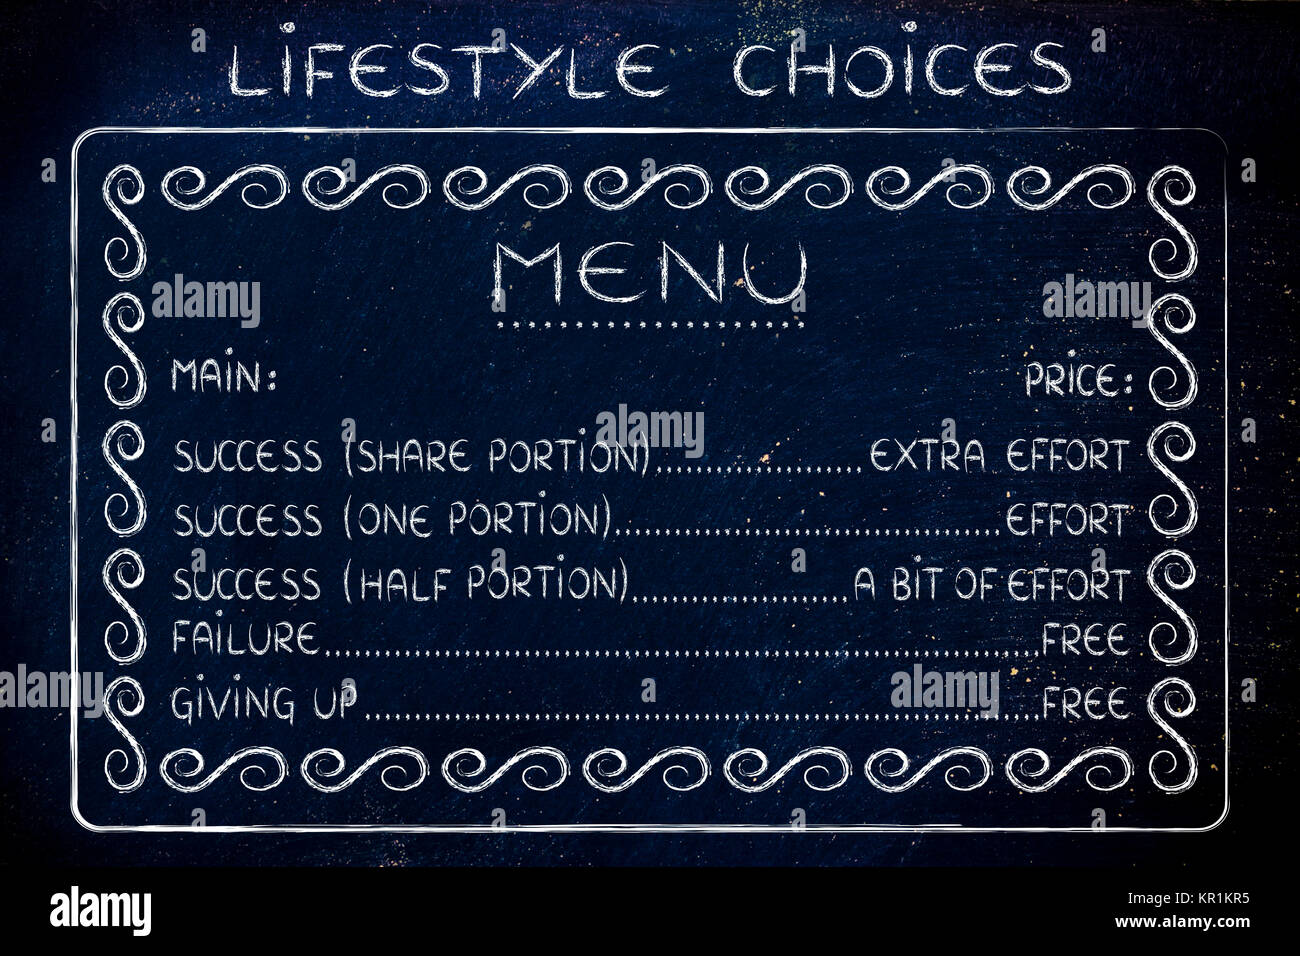 Funny Menu Of Life Choices Work For Success Or Fail For Free Stock Photo Alamy